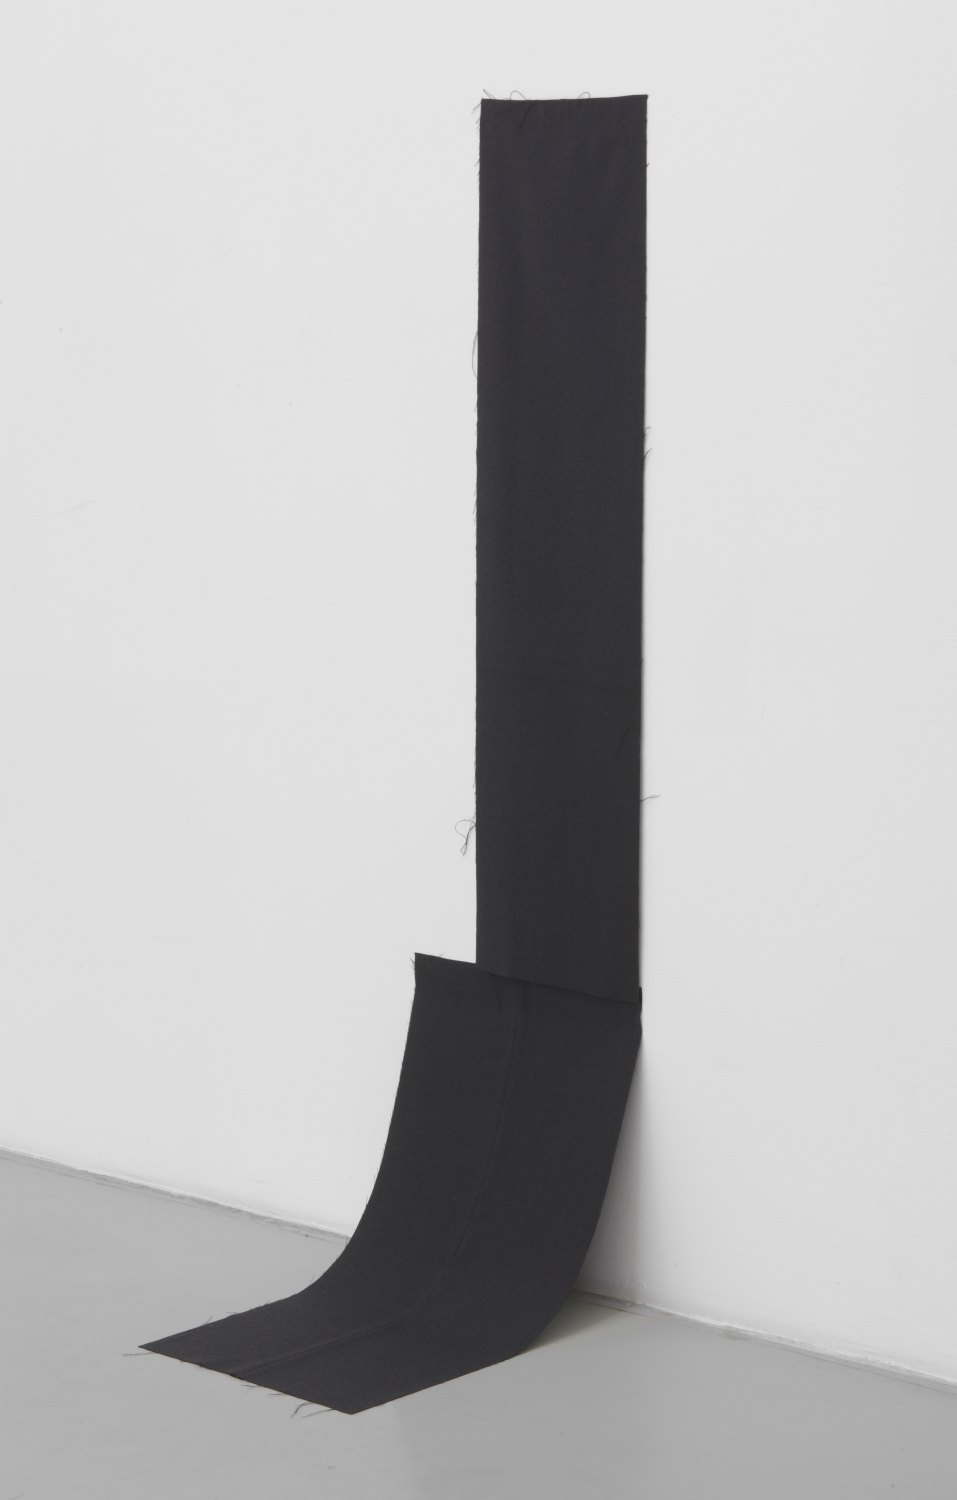 Kitty Kraus Untitled, 2008 Black fabric (two parts), 133 × 33 cm and 72 × 46 cm